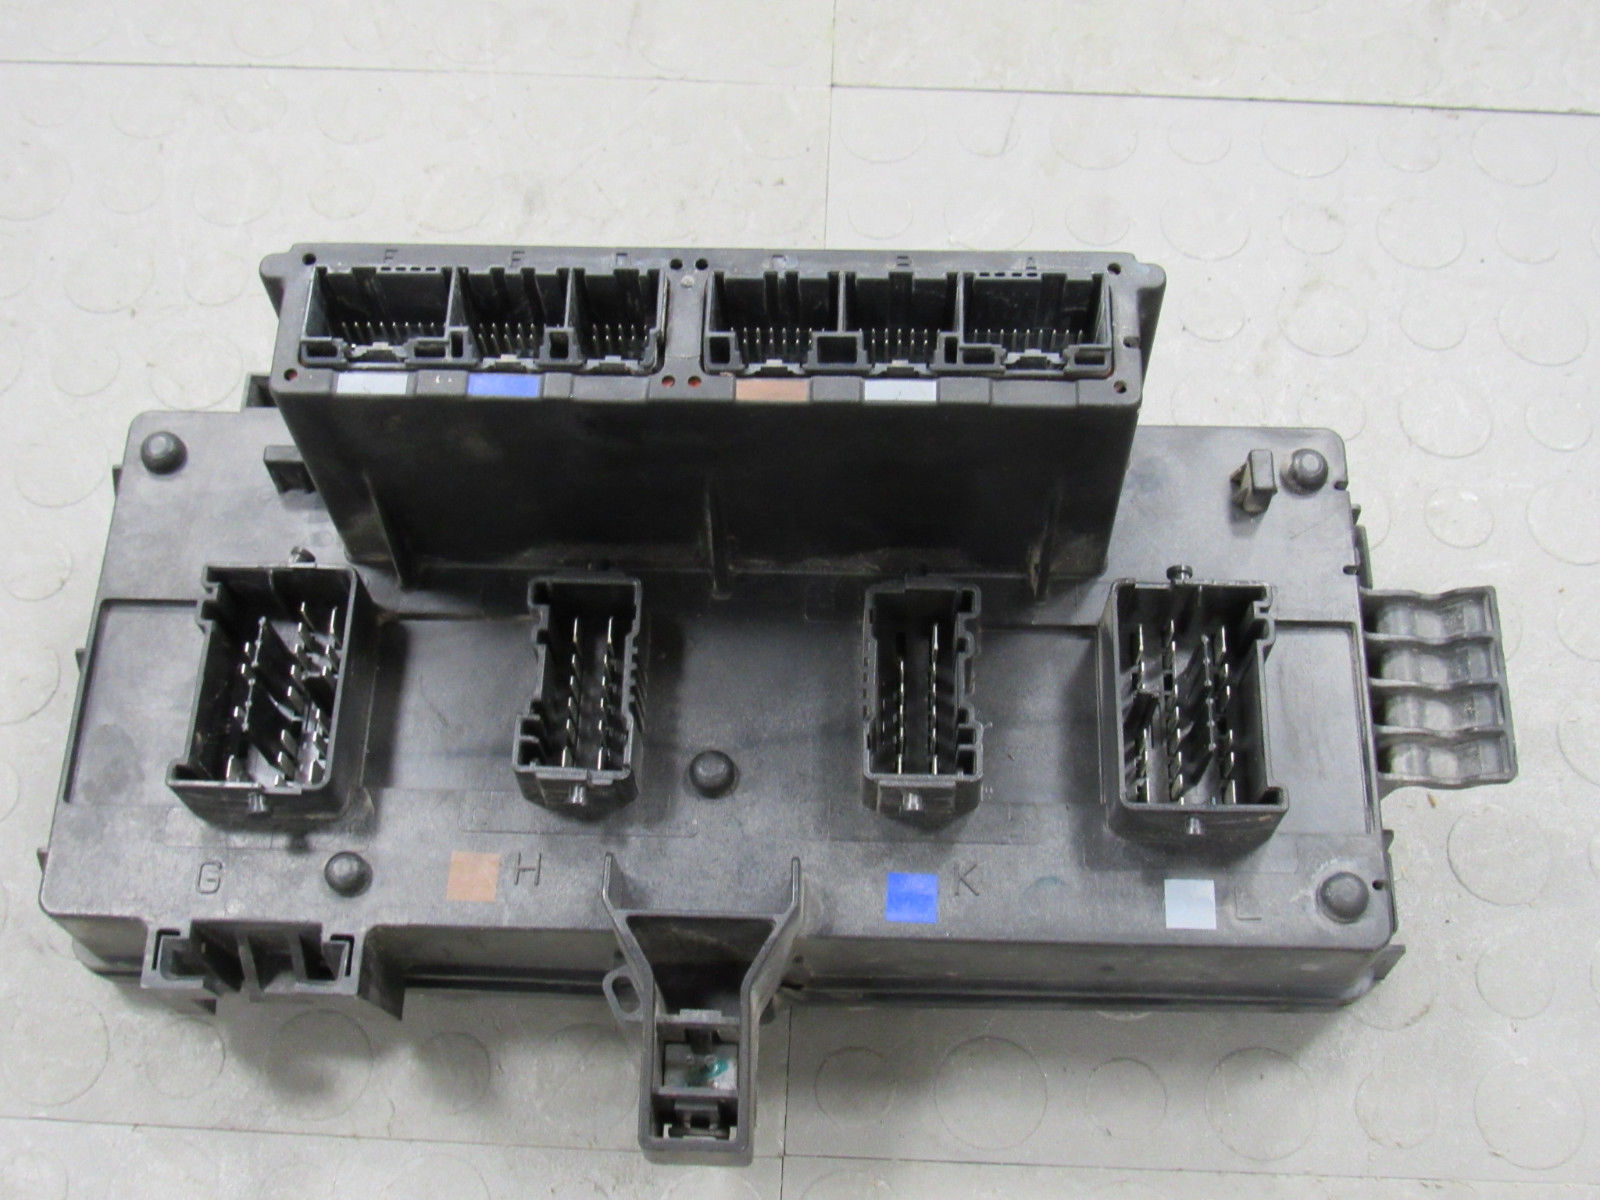 07 Dodge Ram Tipm Totally Integrated Power Module Fuse Box Block 2006 Dodge  Ram 1500 Fuse Box Diagram Dodge Ram Fuse Box Module